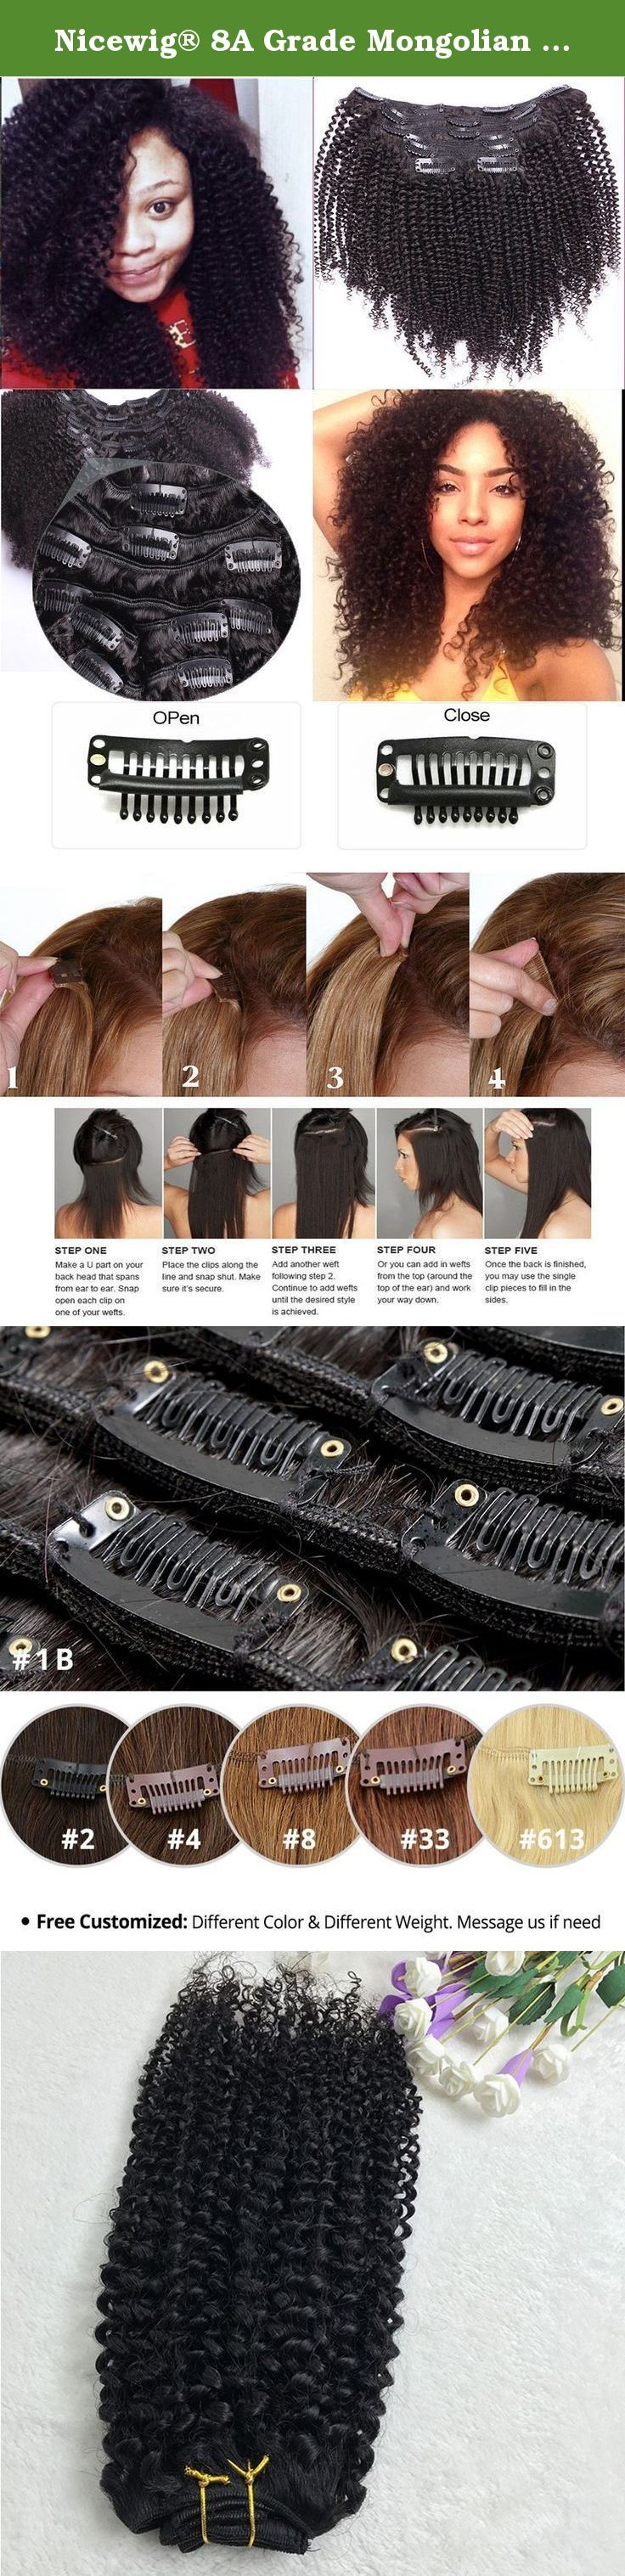 """Nicewig® 8A Grade Mongolian Afro Kinky Curly Clip In Hair Extension Vigin Human Hair weaving Kinky Curly Clip Ins 7pcs/lot,120gram/set Natural Black For American Black Women 10"""". Hair Specifics 1)Item Name: Clip in Human Hair Extensions; 2) Hair Color: Natural Black Color, #1B ;(a little dark brown ) 3)Hair Quality:Top Quality Grade 8A Virgin Human Hair,No tangle,No Shedding; 4)Hair Length: 10 Inch 5)Net Weight: 95-105 Grams for hair only.add 16pcs clips , total about 120 grams. (we are a..."""